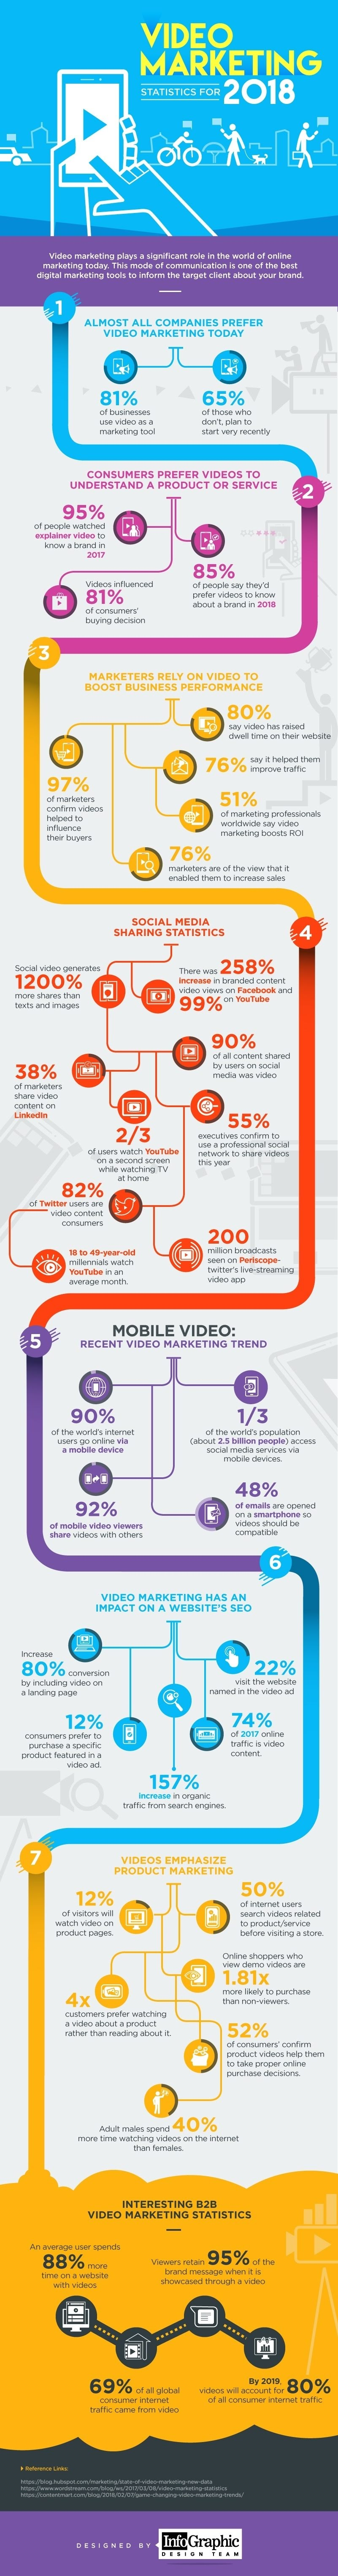 Video Marketing Statistics For 2018 #Infographic